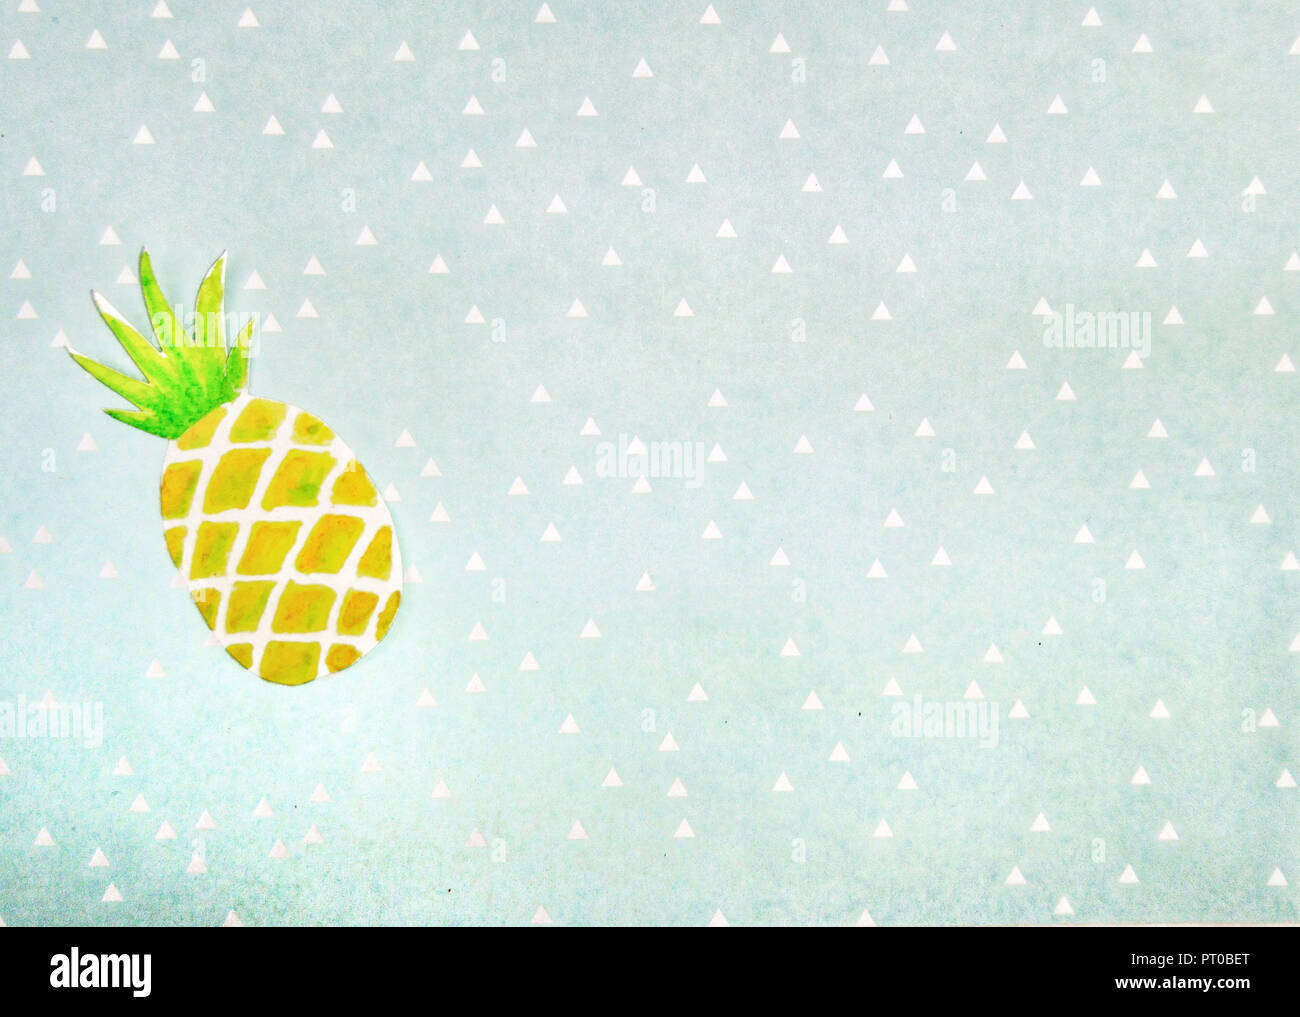 Watercolor, pineapple, background, triangles - Stock Image